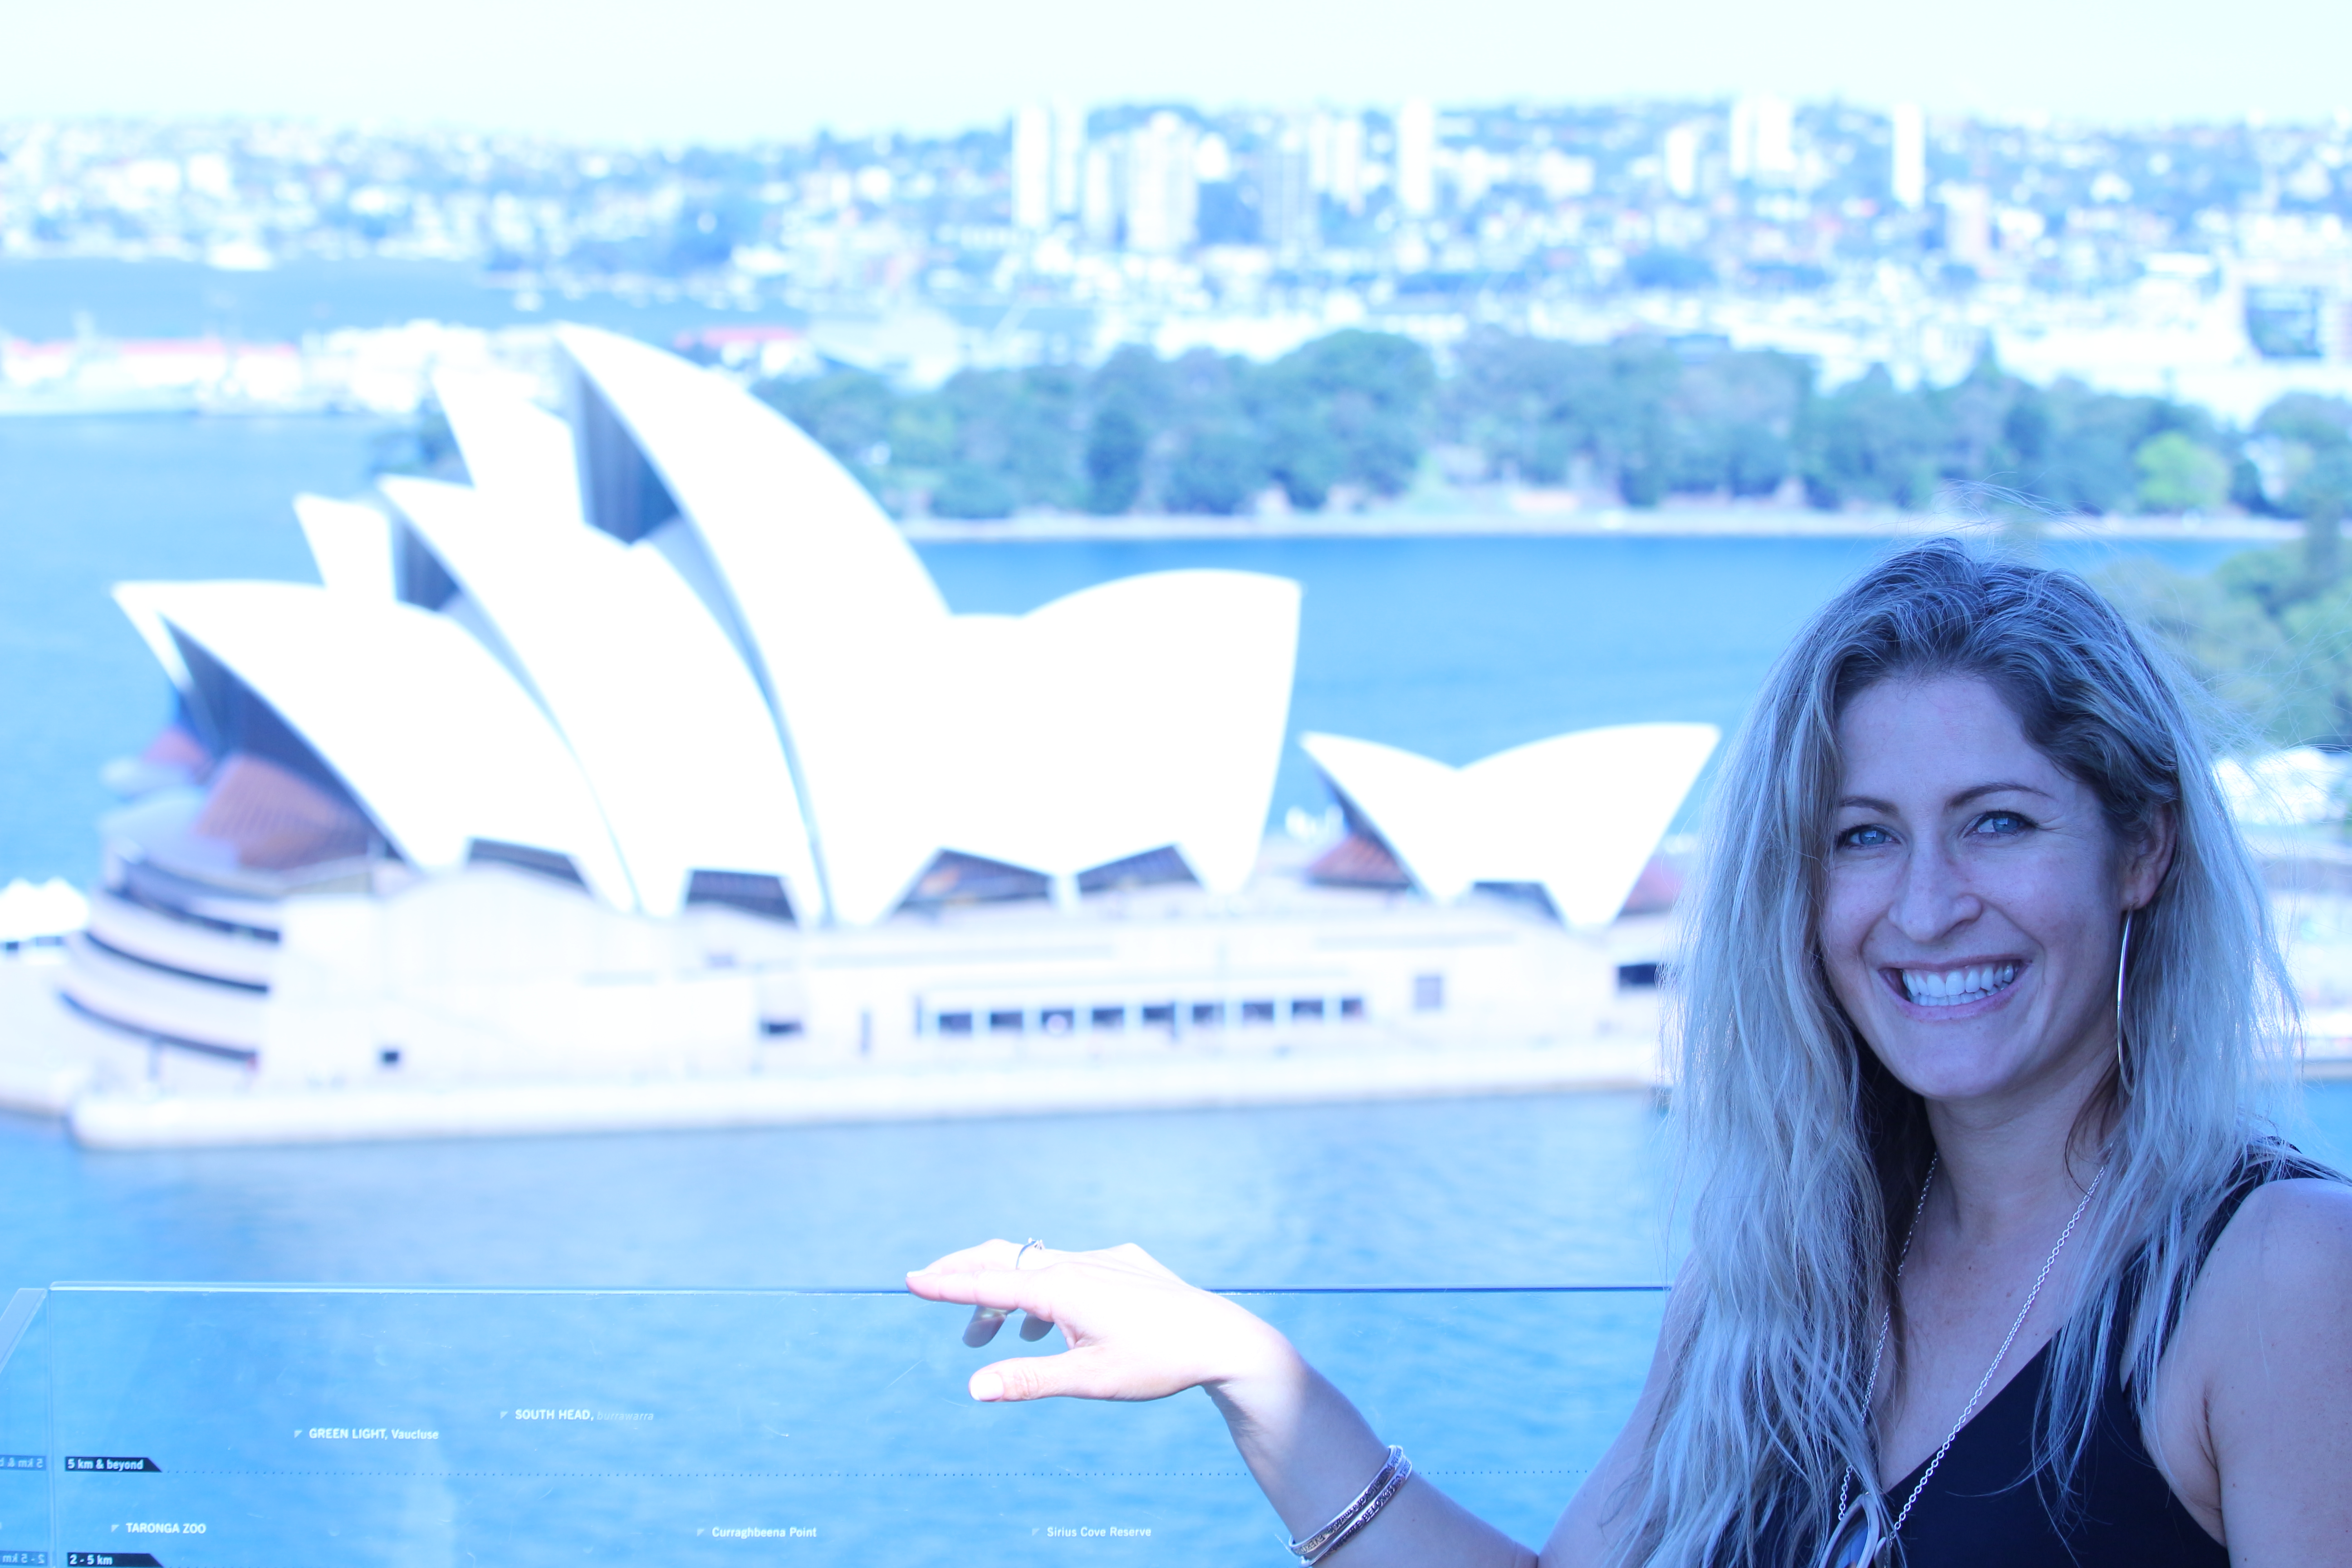 Performed at Sydney Opera House 2016